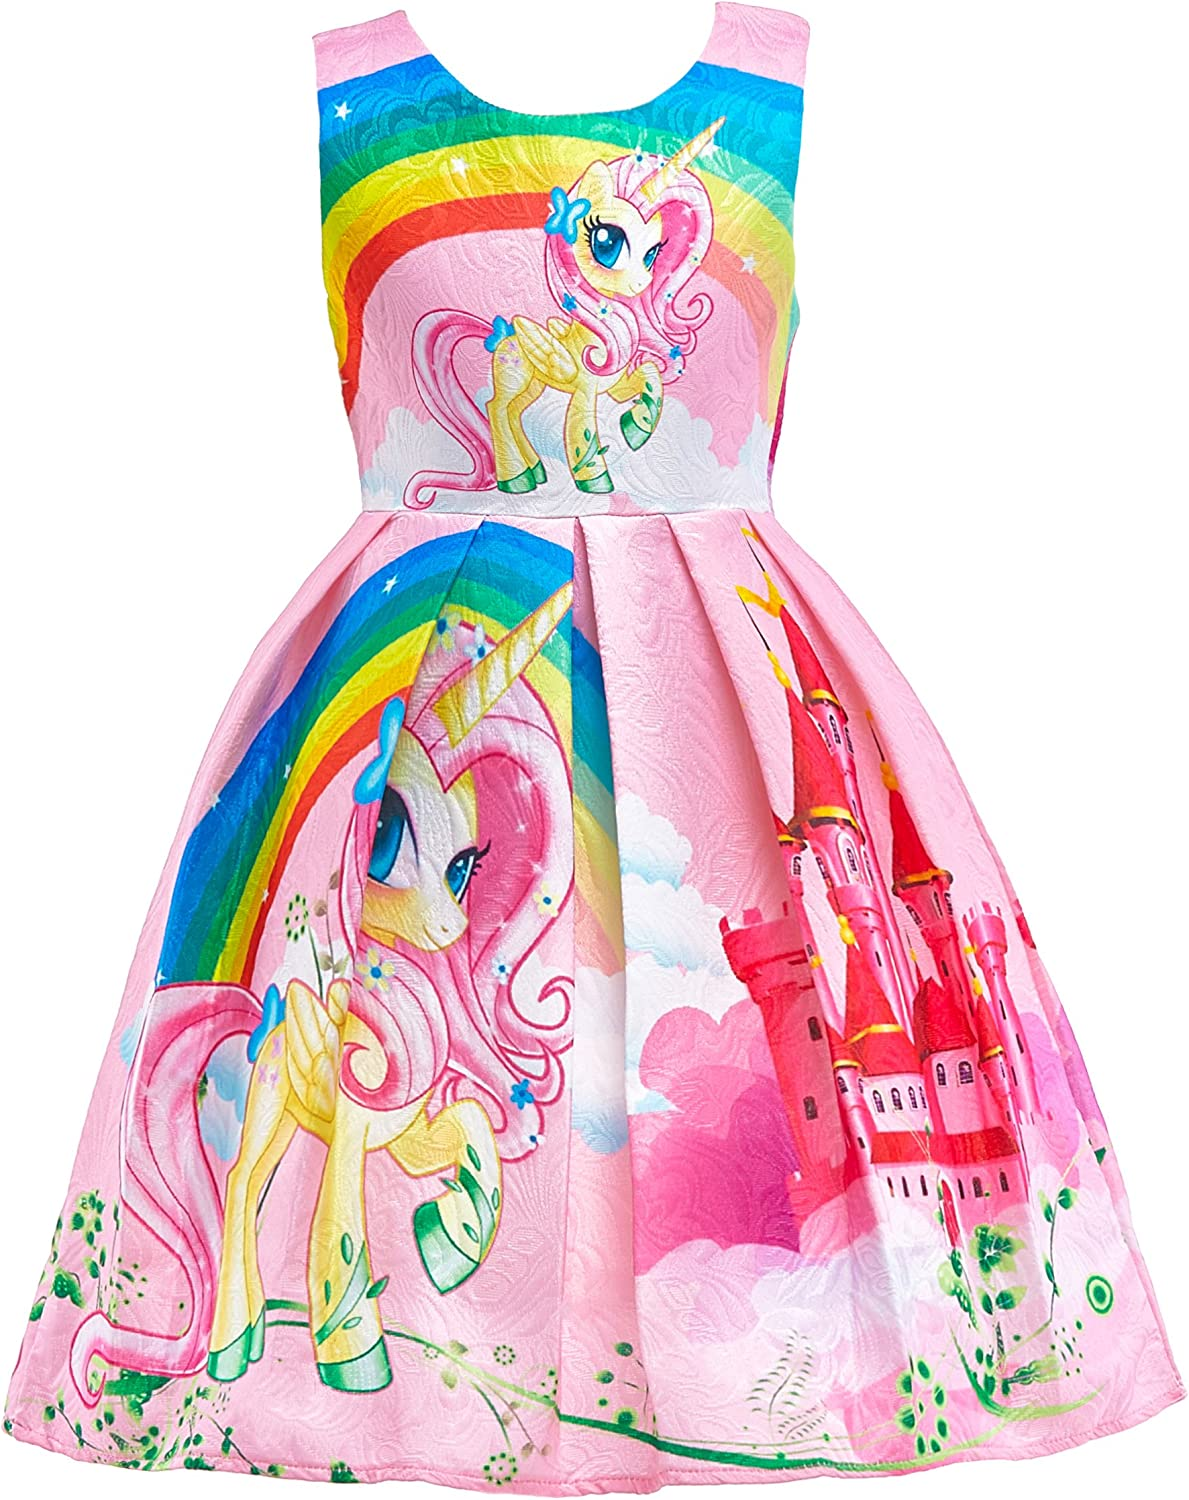 Dressy Daisy Girls Dress Costumes Rainbow Unicorn Costumes Fancy Dress up